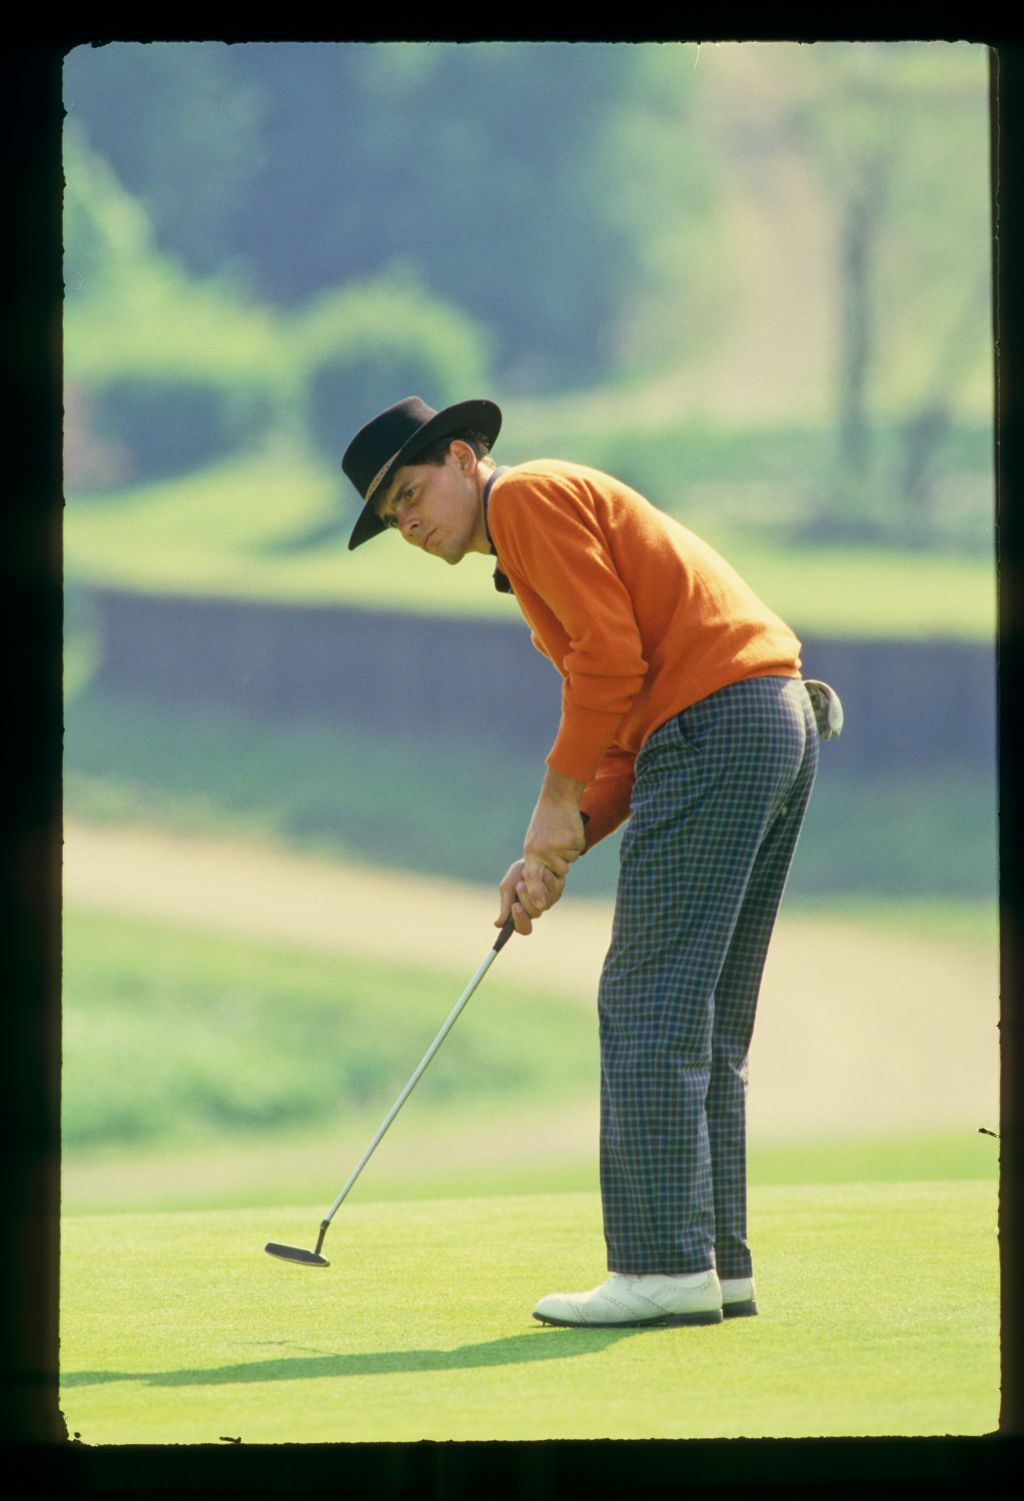 English golfer Robert Lee, in Stetson hat, sending a putt on its way at the 1987 Epson Grand Prix